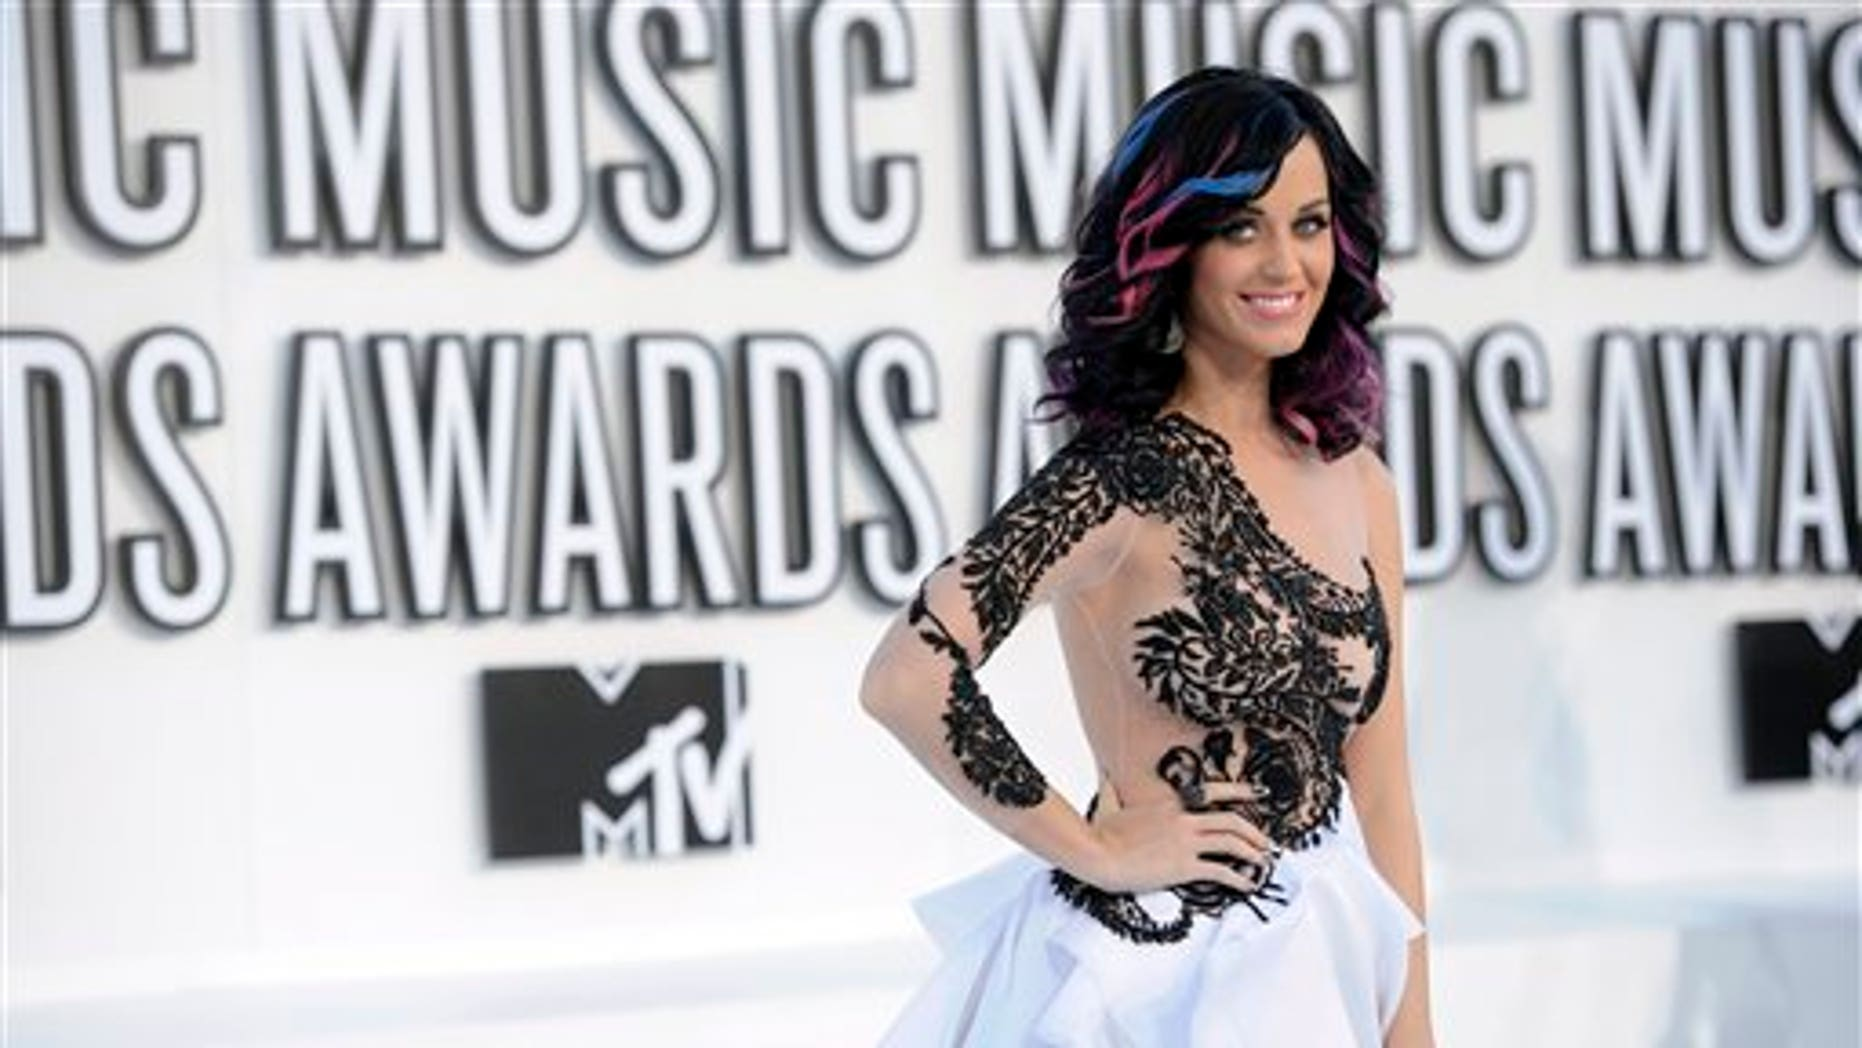 Katy Perry arrives at the MTV Video Music Awards on Sunday, Sept. 12, 2010 in Los Angeles. (AP Photo/Chris Pizzello)